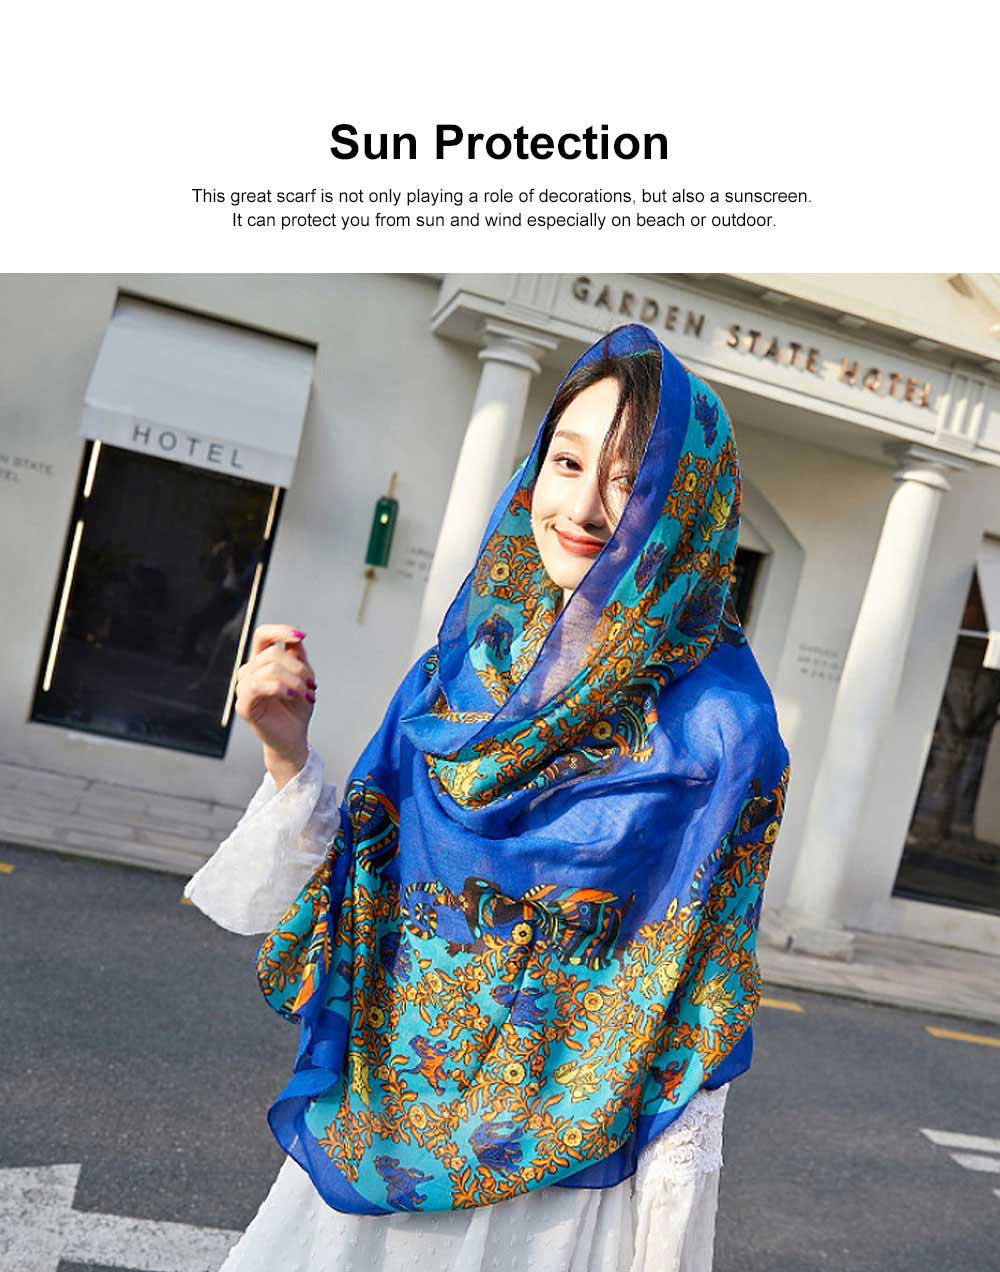 Women Printing Scarves Large Sunscreen Shawl Beach Cover-up Fashion Accessories Best Gifts for Women 2